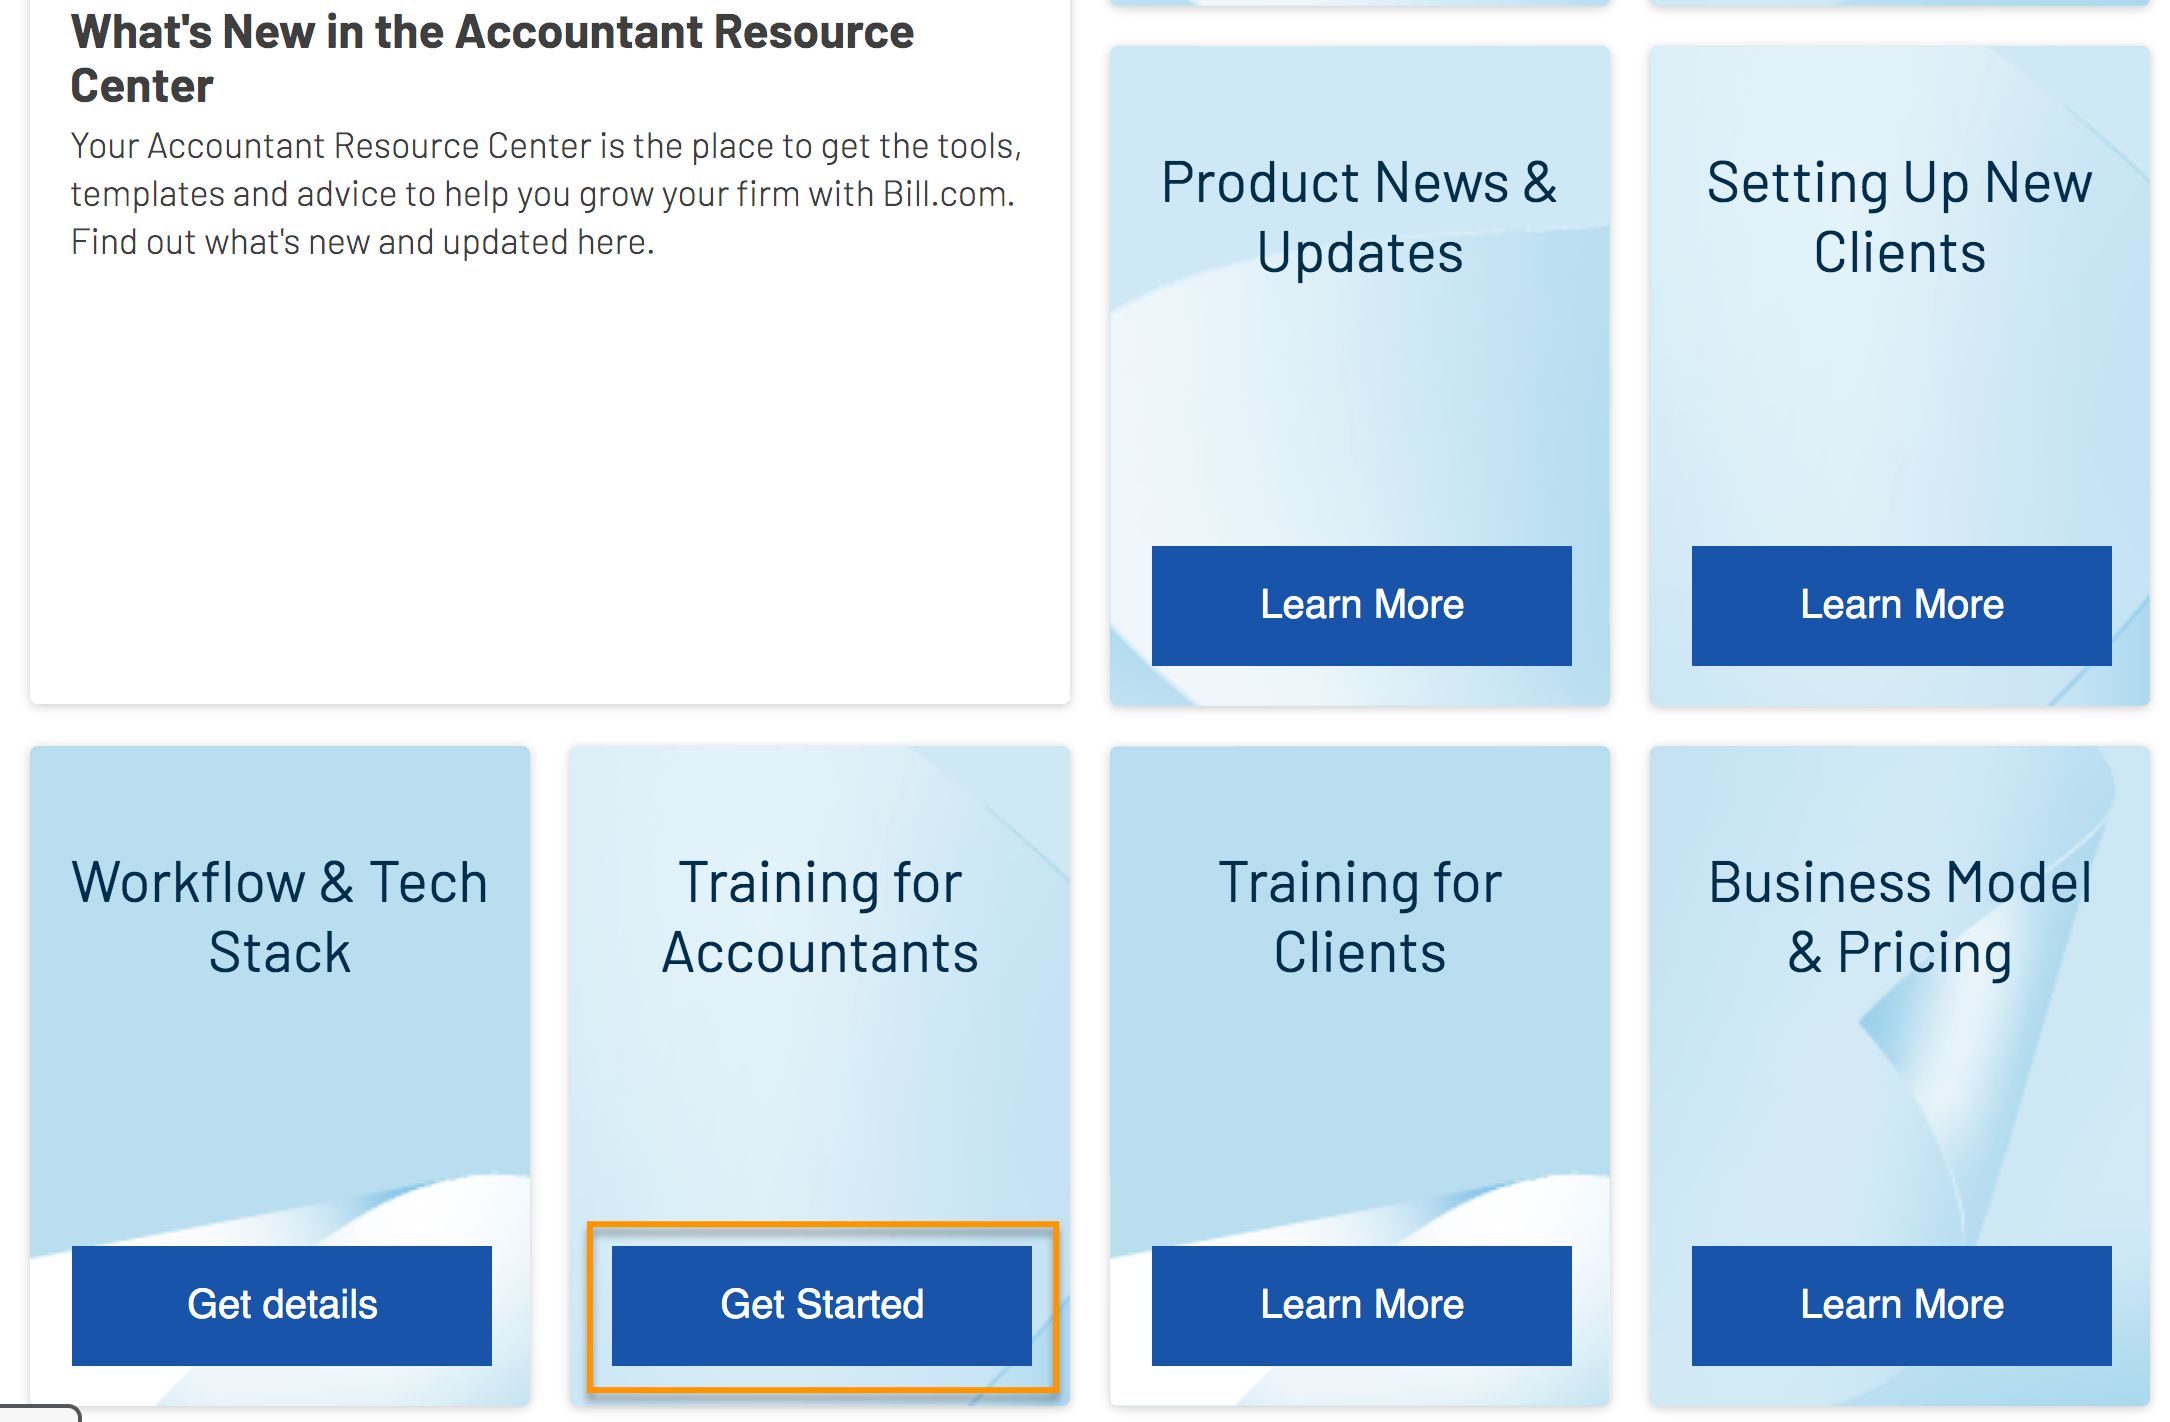 Accountant Resource Center - training link